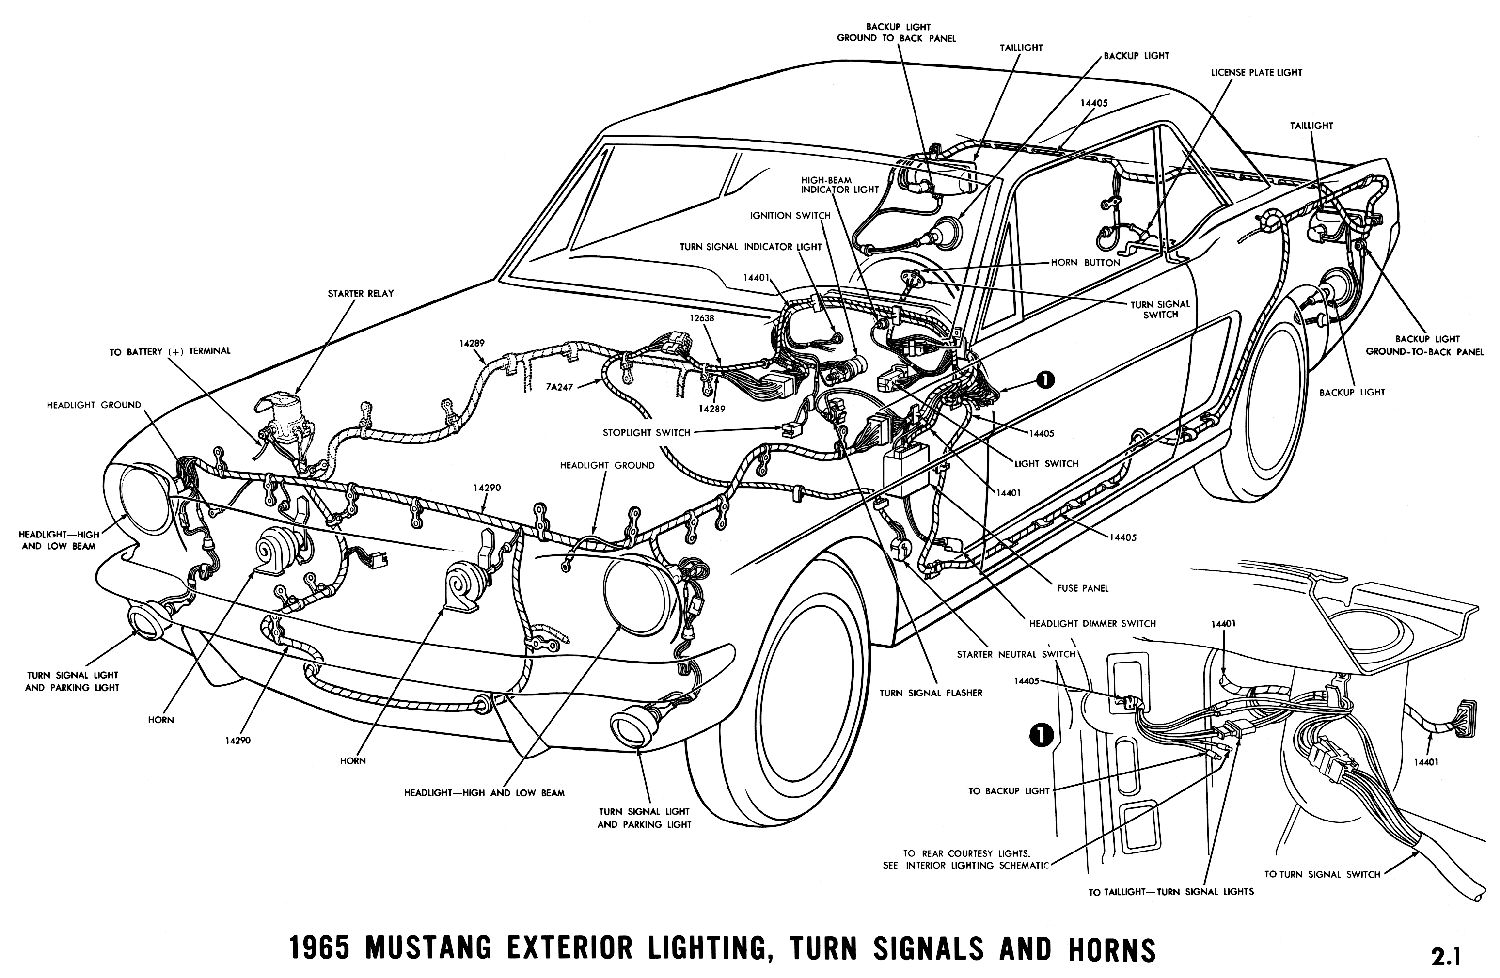 Mustang Tail Light Wiring Diagram Schematic